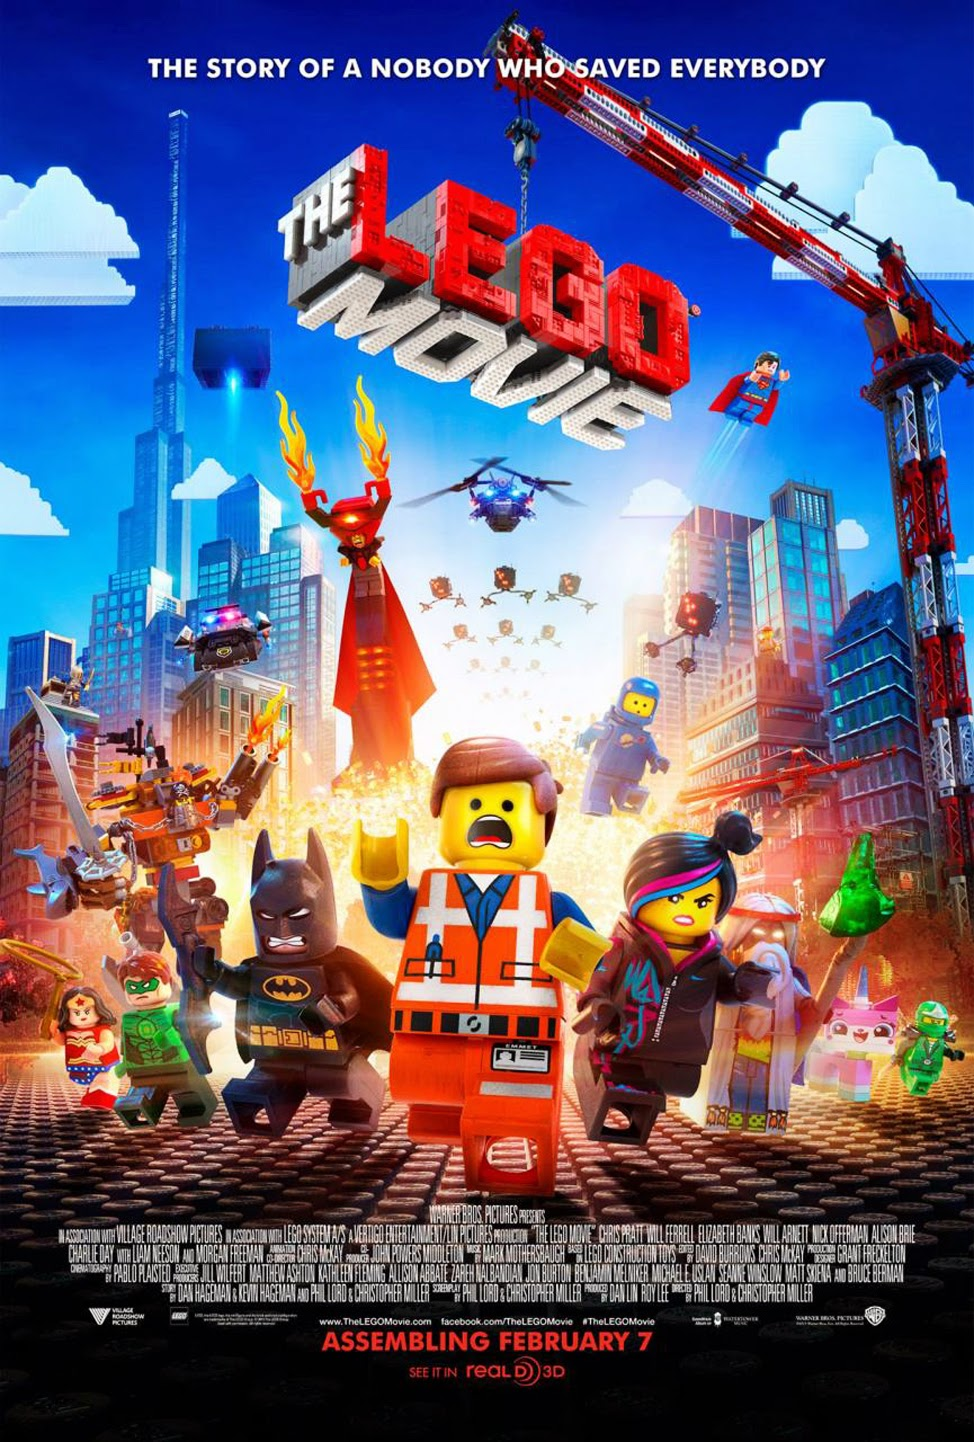 Lego 2014 3D Movie Super Lego Heroes HD Wallpaper